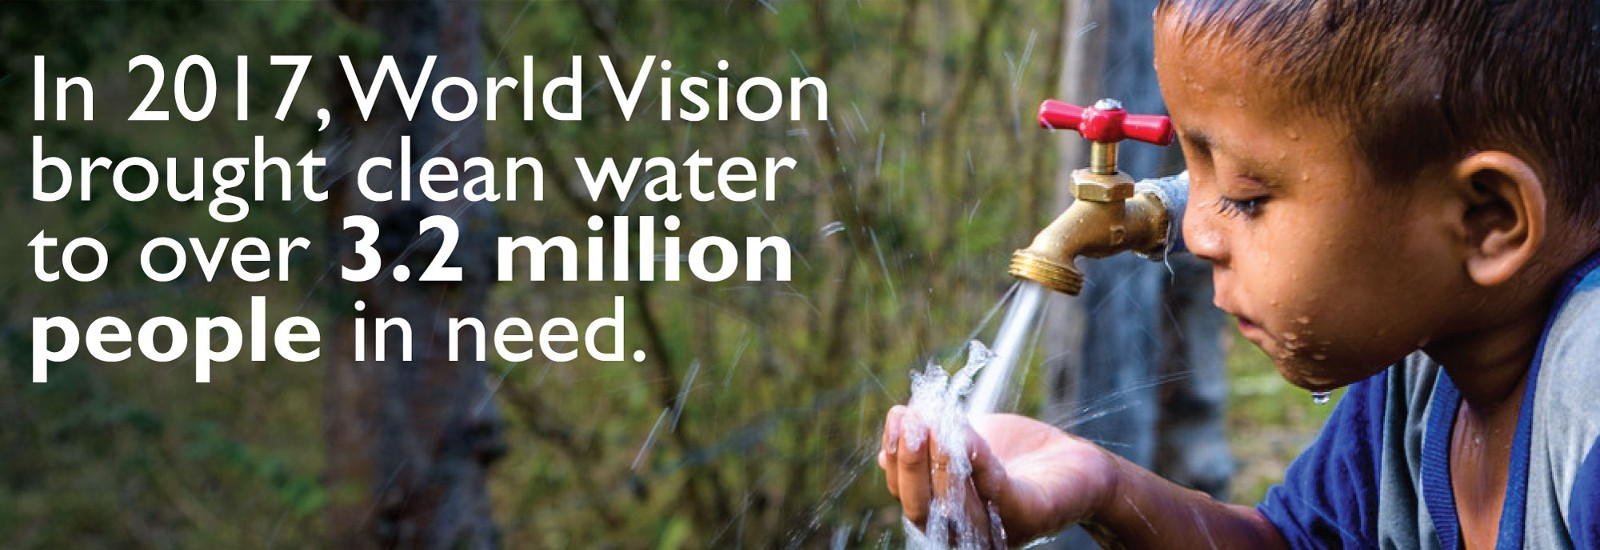 In 2017, World Vision brought clean water to over 3.2 million people in need